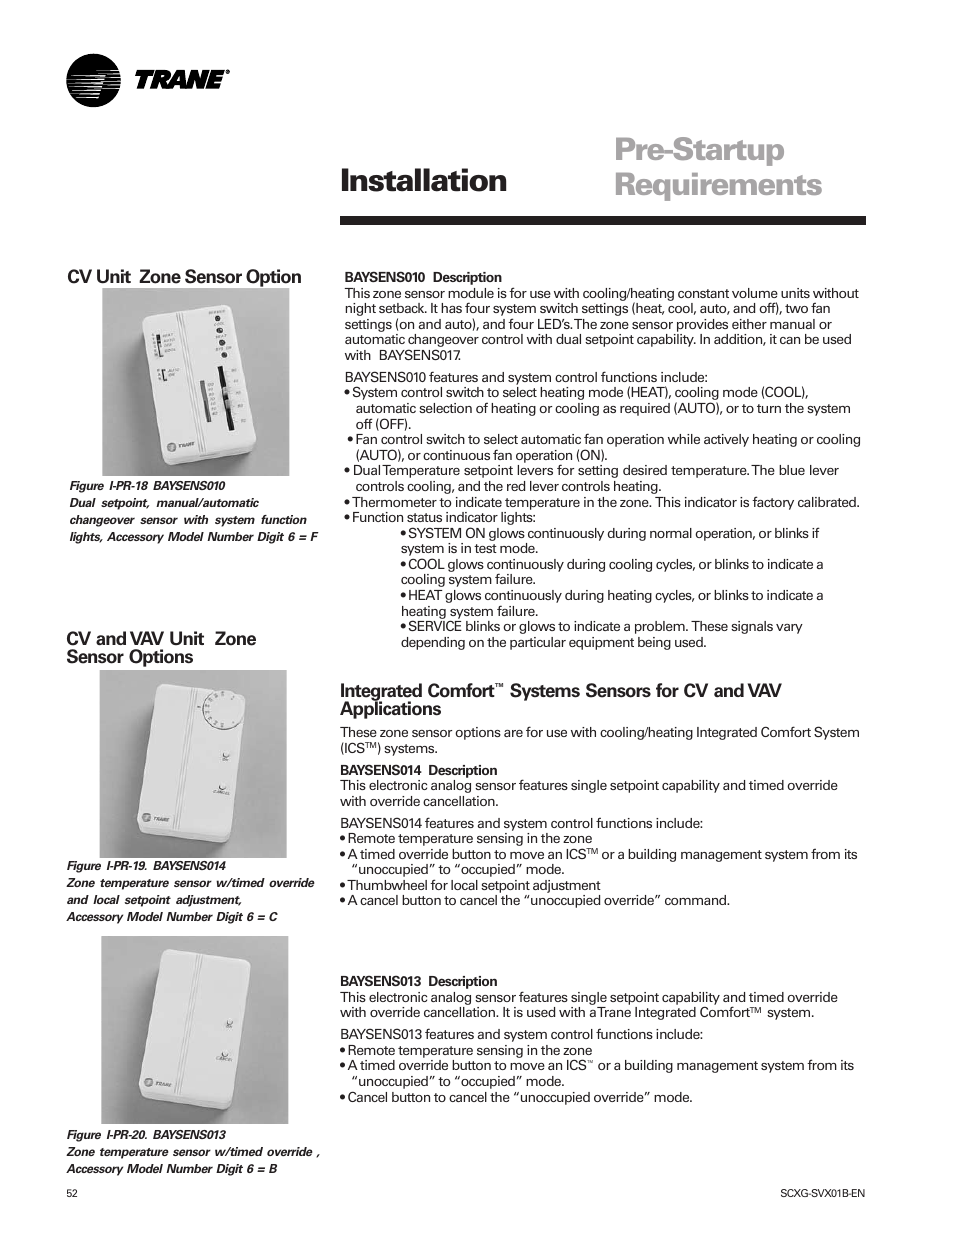 Pre-startup requirements, Installation, Cv unit zone sensor option | Trane  IntelliPak SCWG 020 User Manual | Page 52 / 124